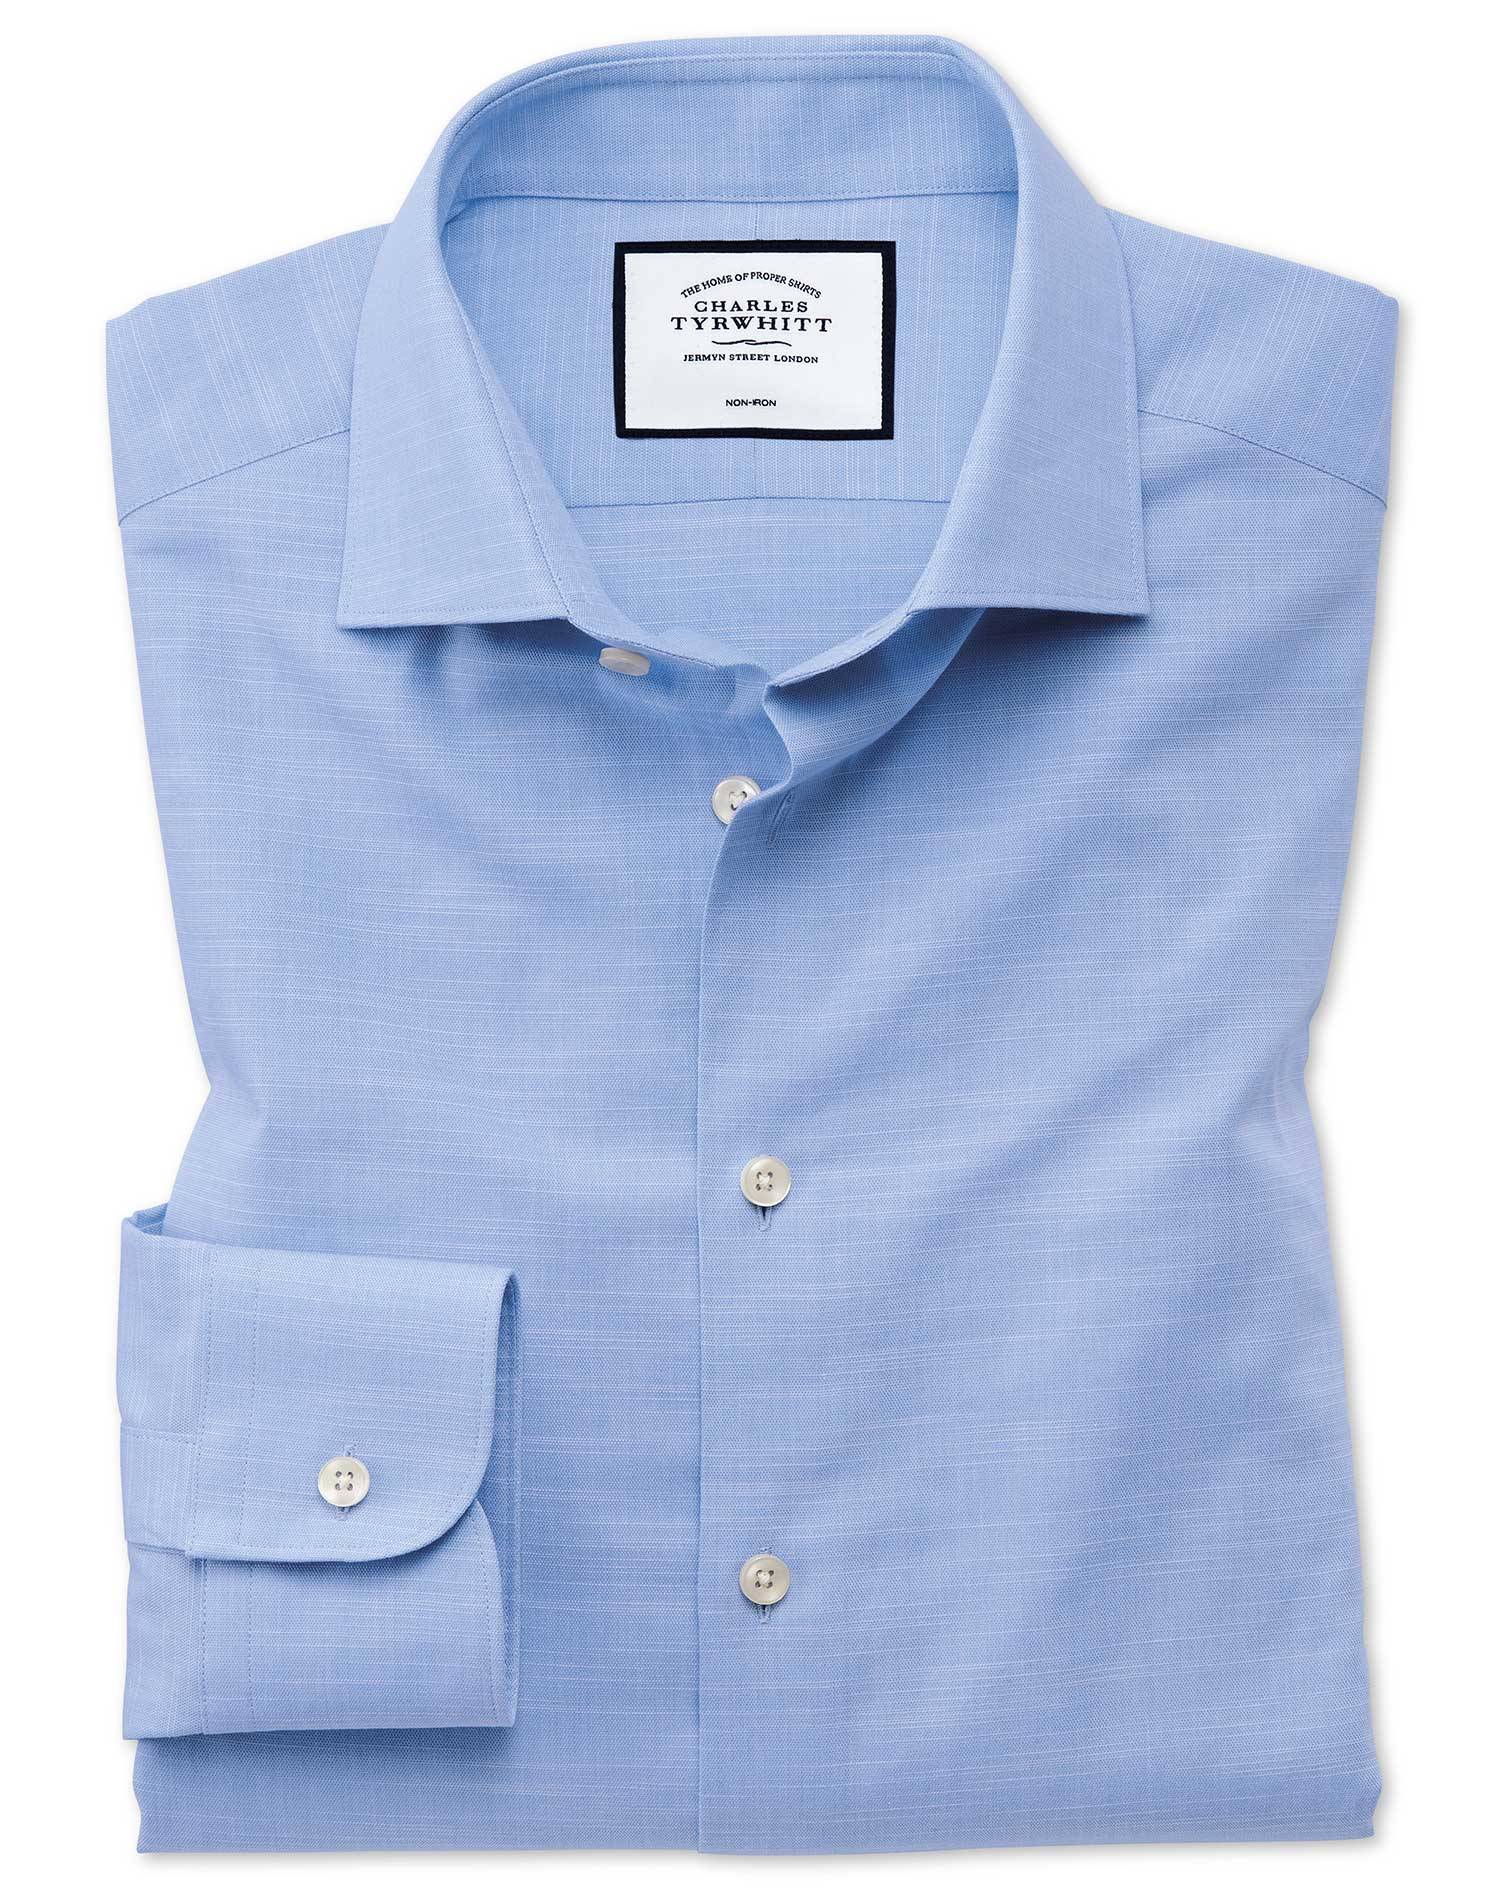 Slim Fit Business Casual Egyptian Cotton Slub Sky Blue Formal Shirt Single Cuff Size 17.5/35 by Char